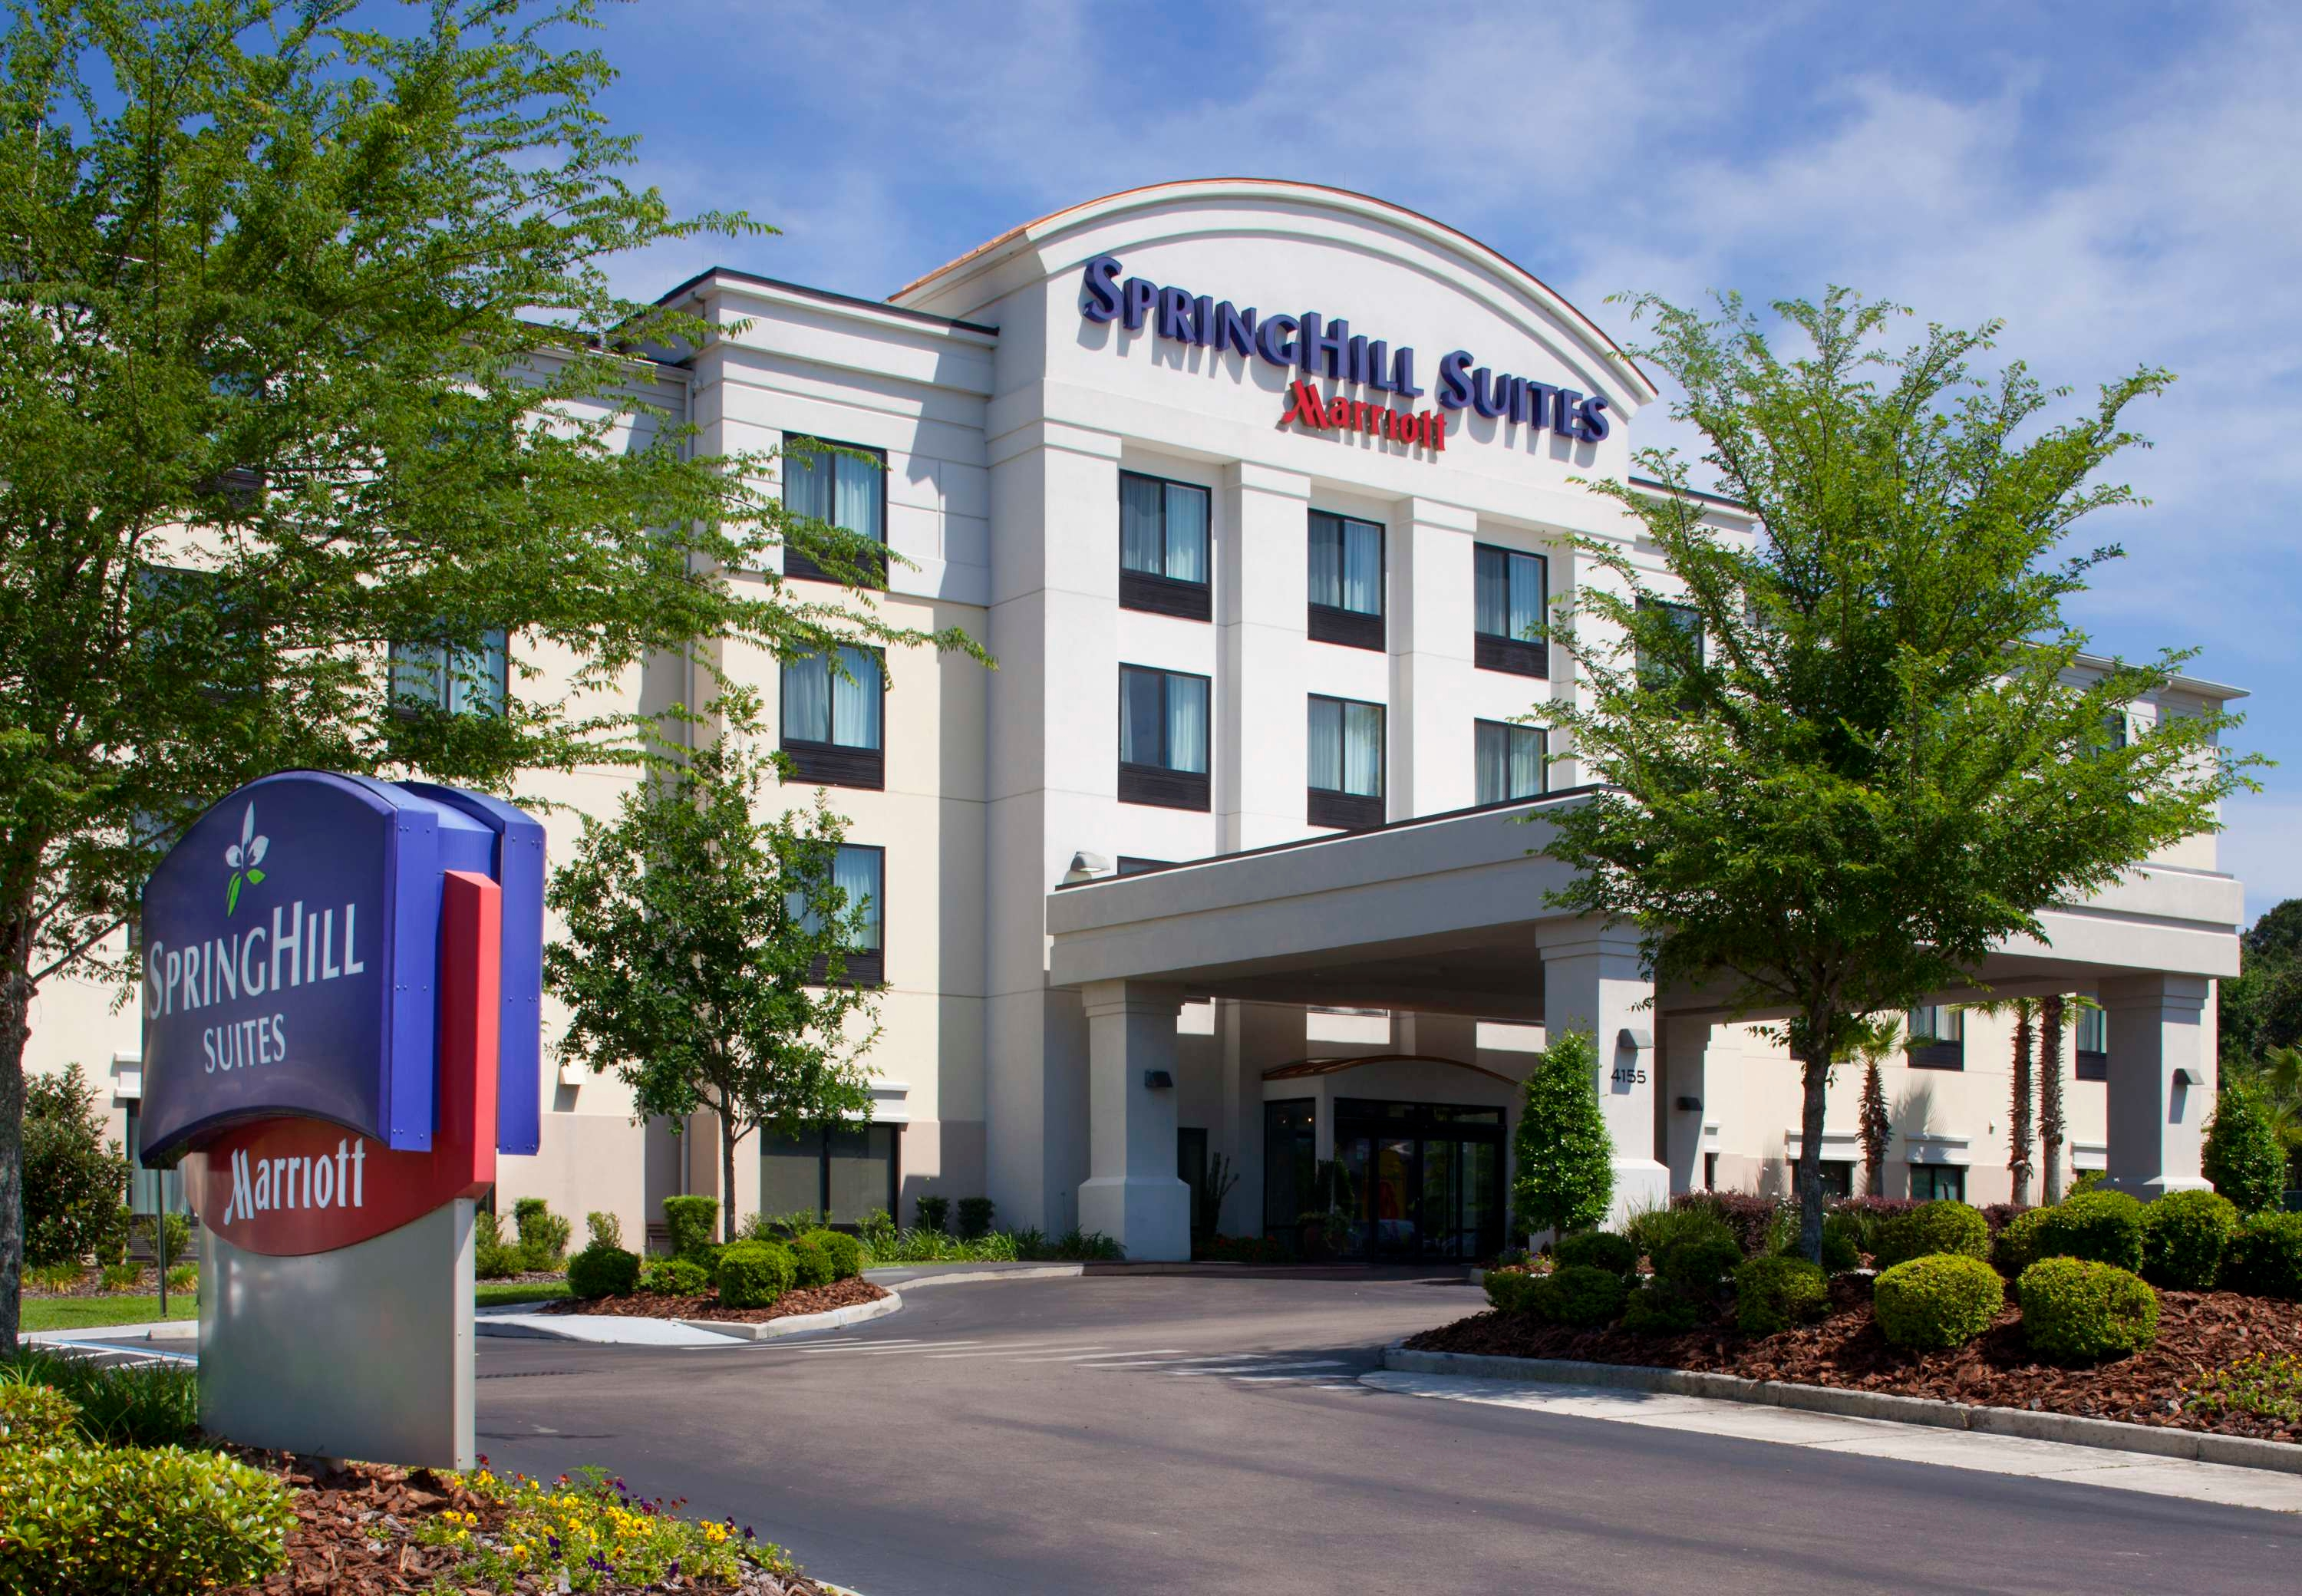 SpringHill Suites by Marriott Gainesville image 0